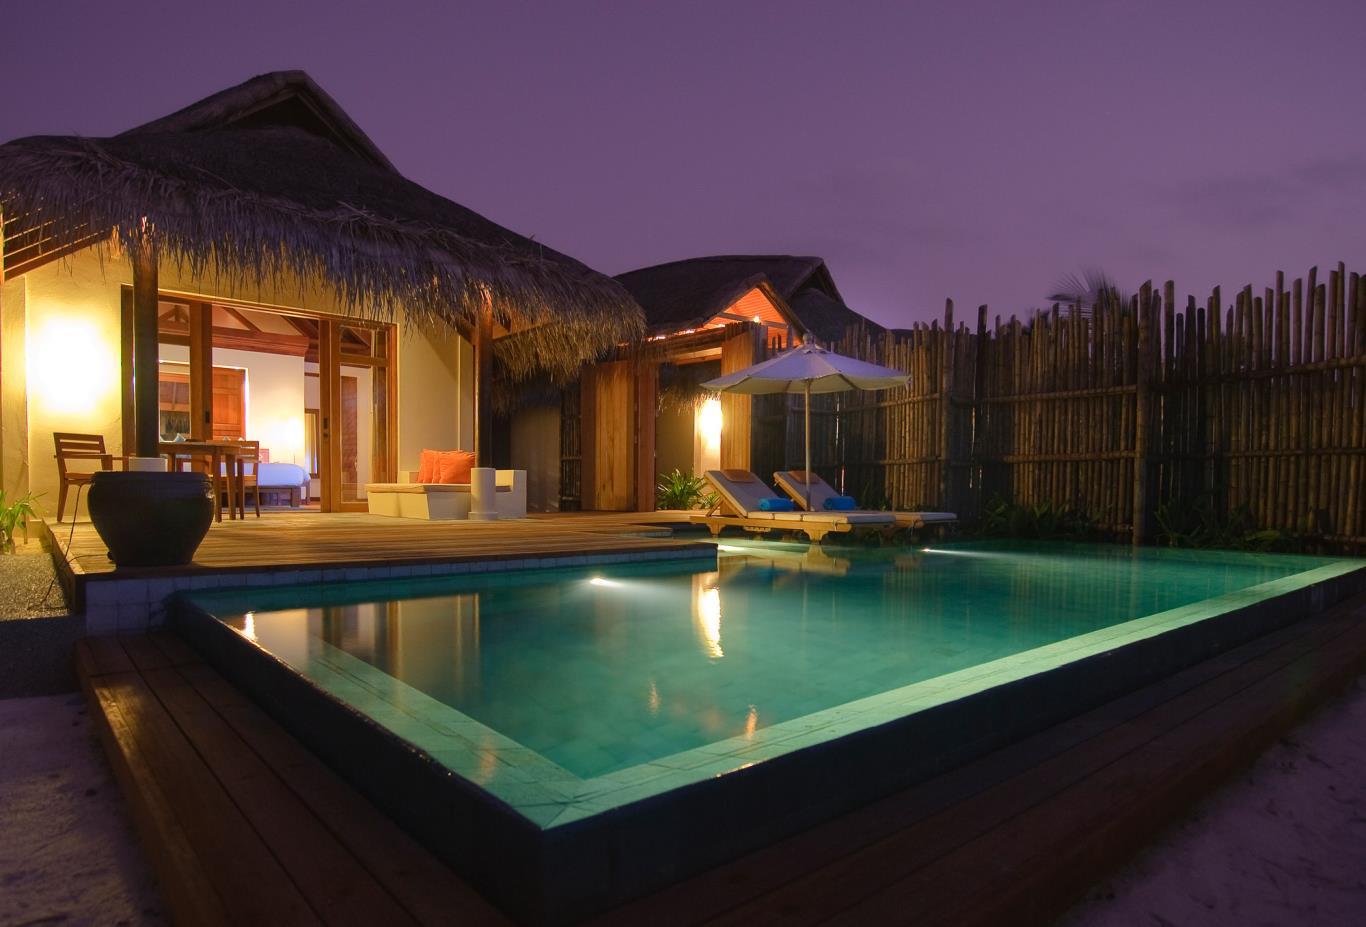 Anantara Pool Villa evening